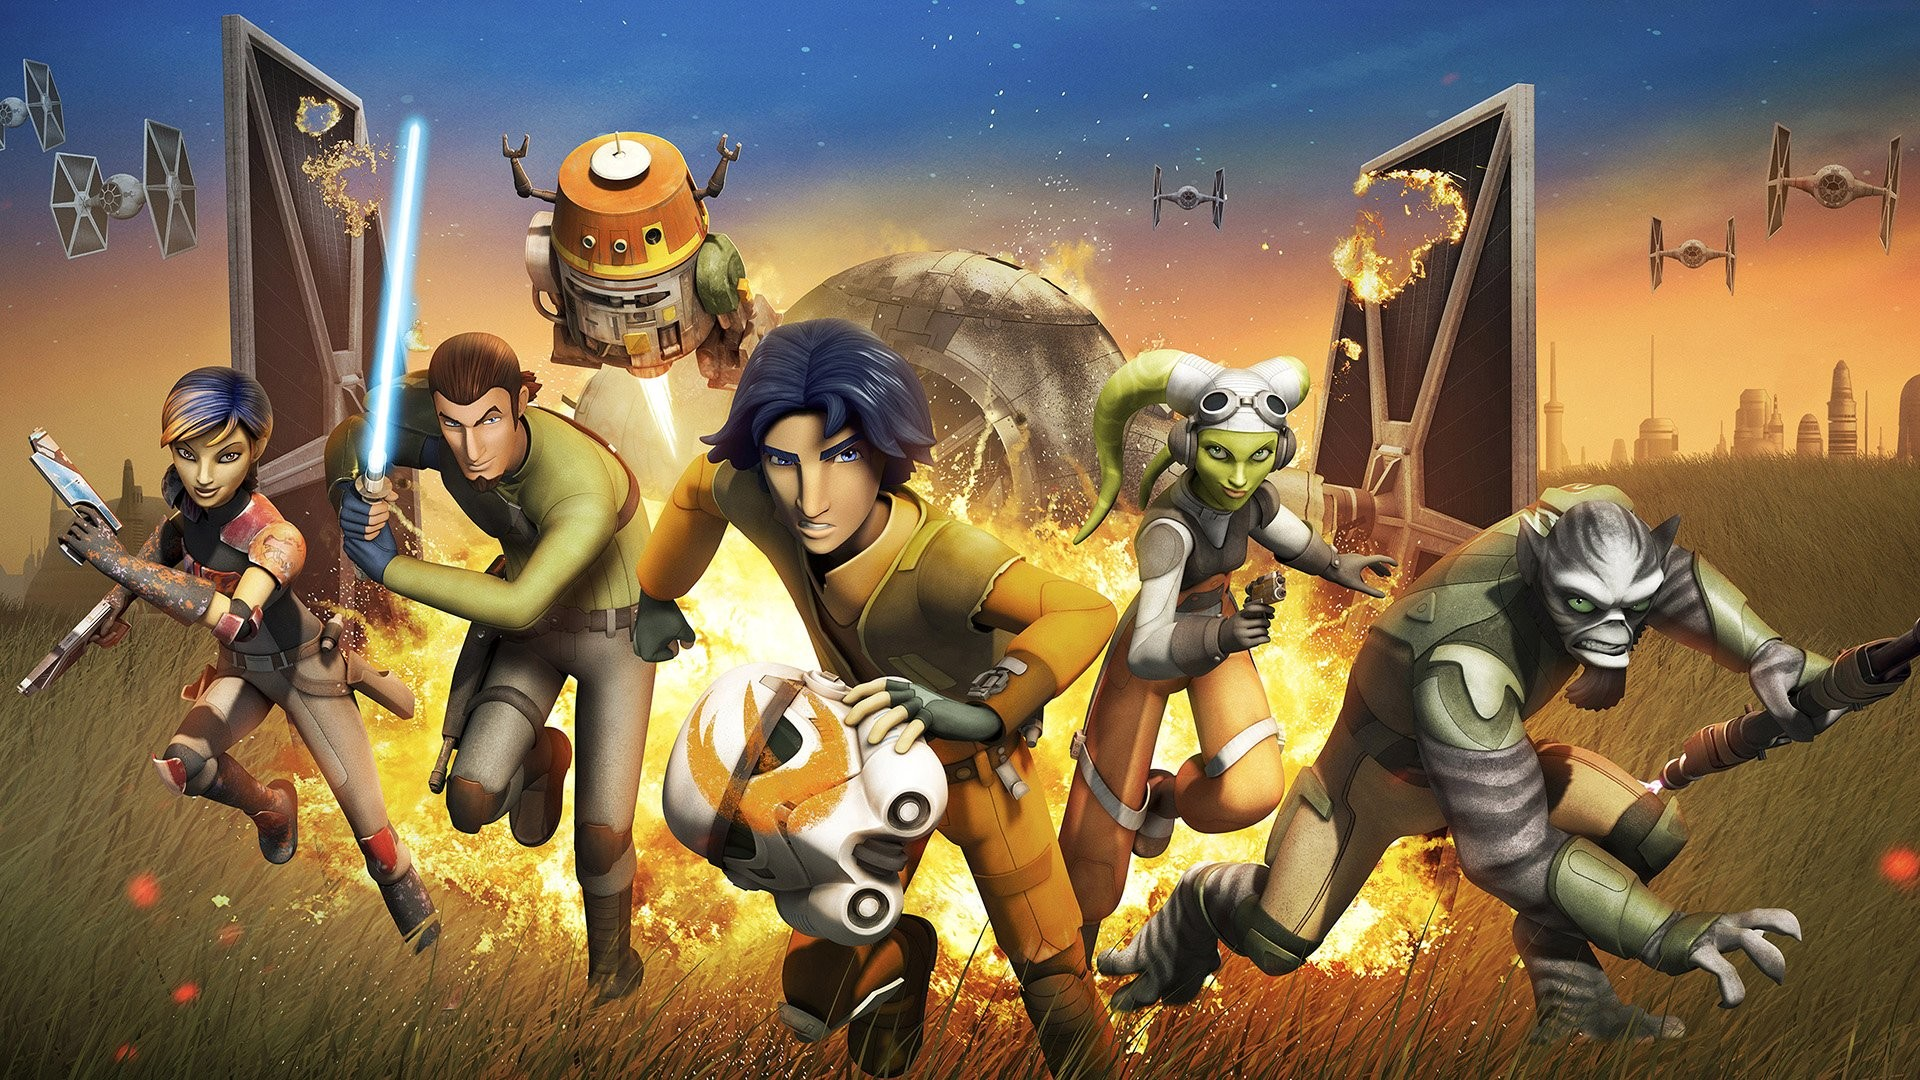 Star Wars Rebels Hd Wallpapers 84 Pictures